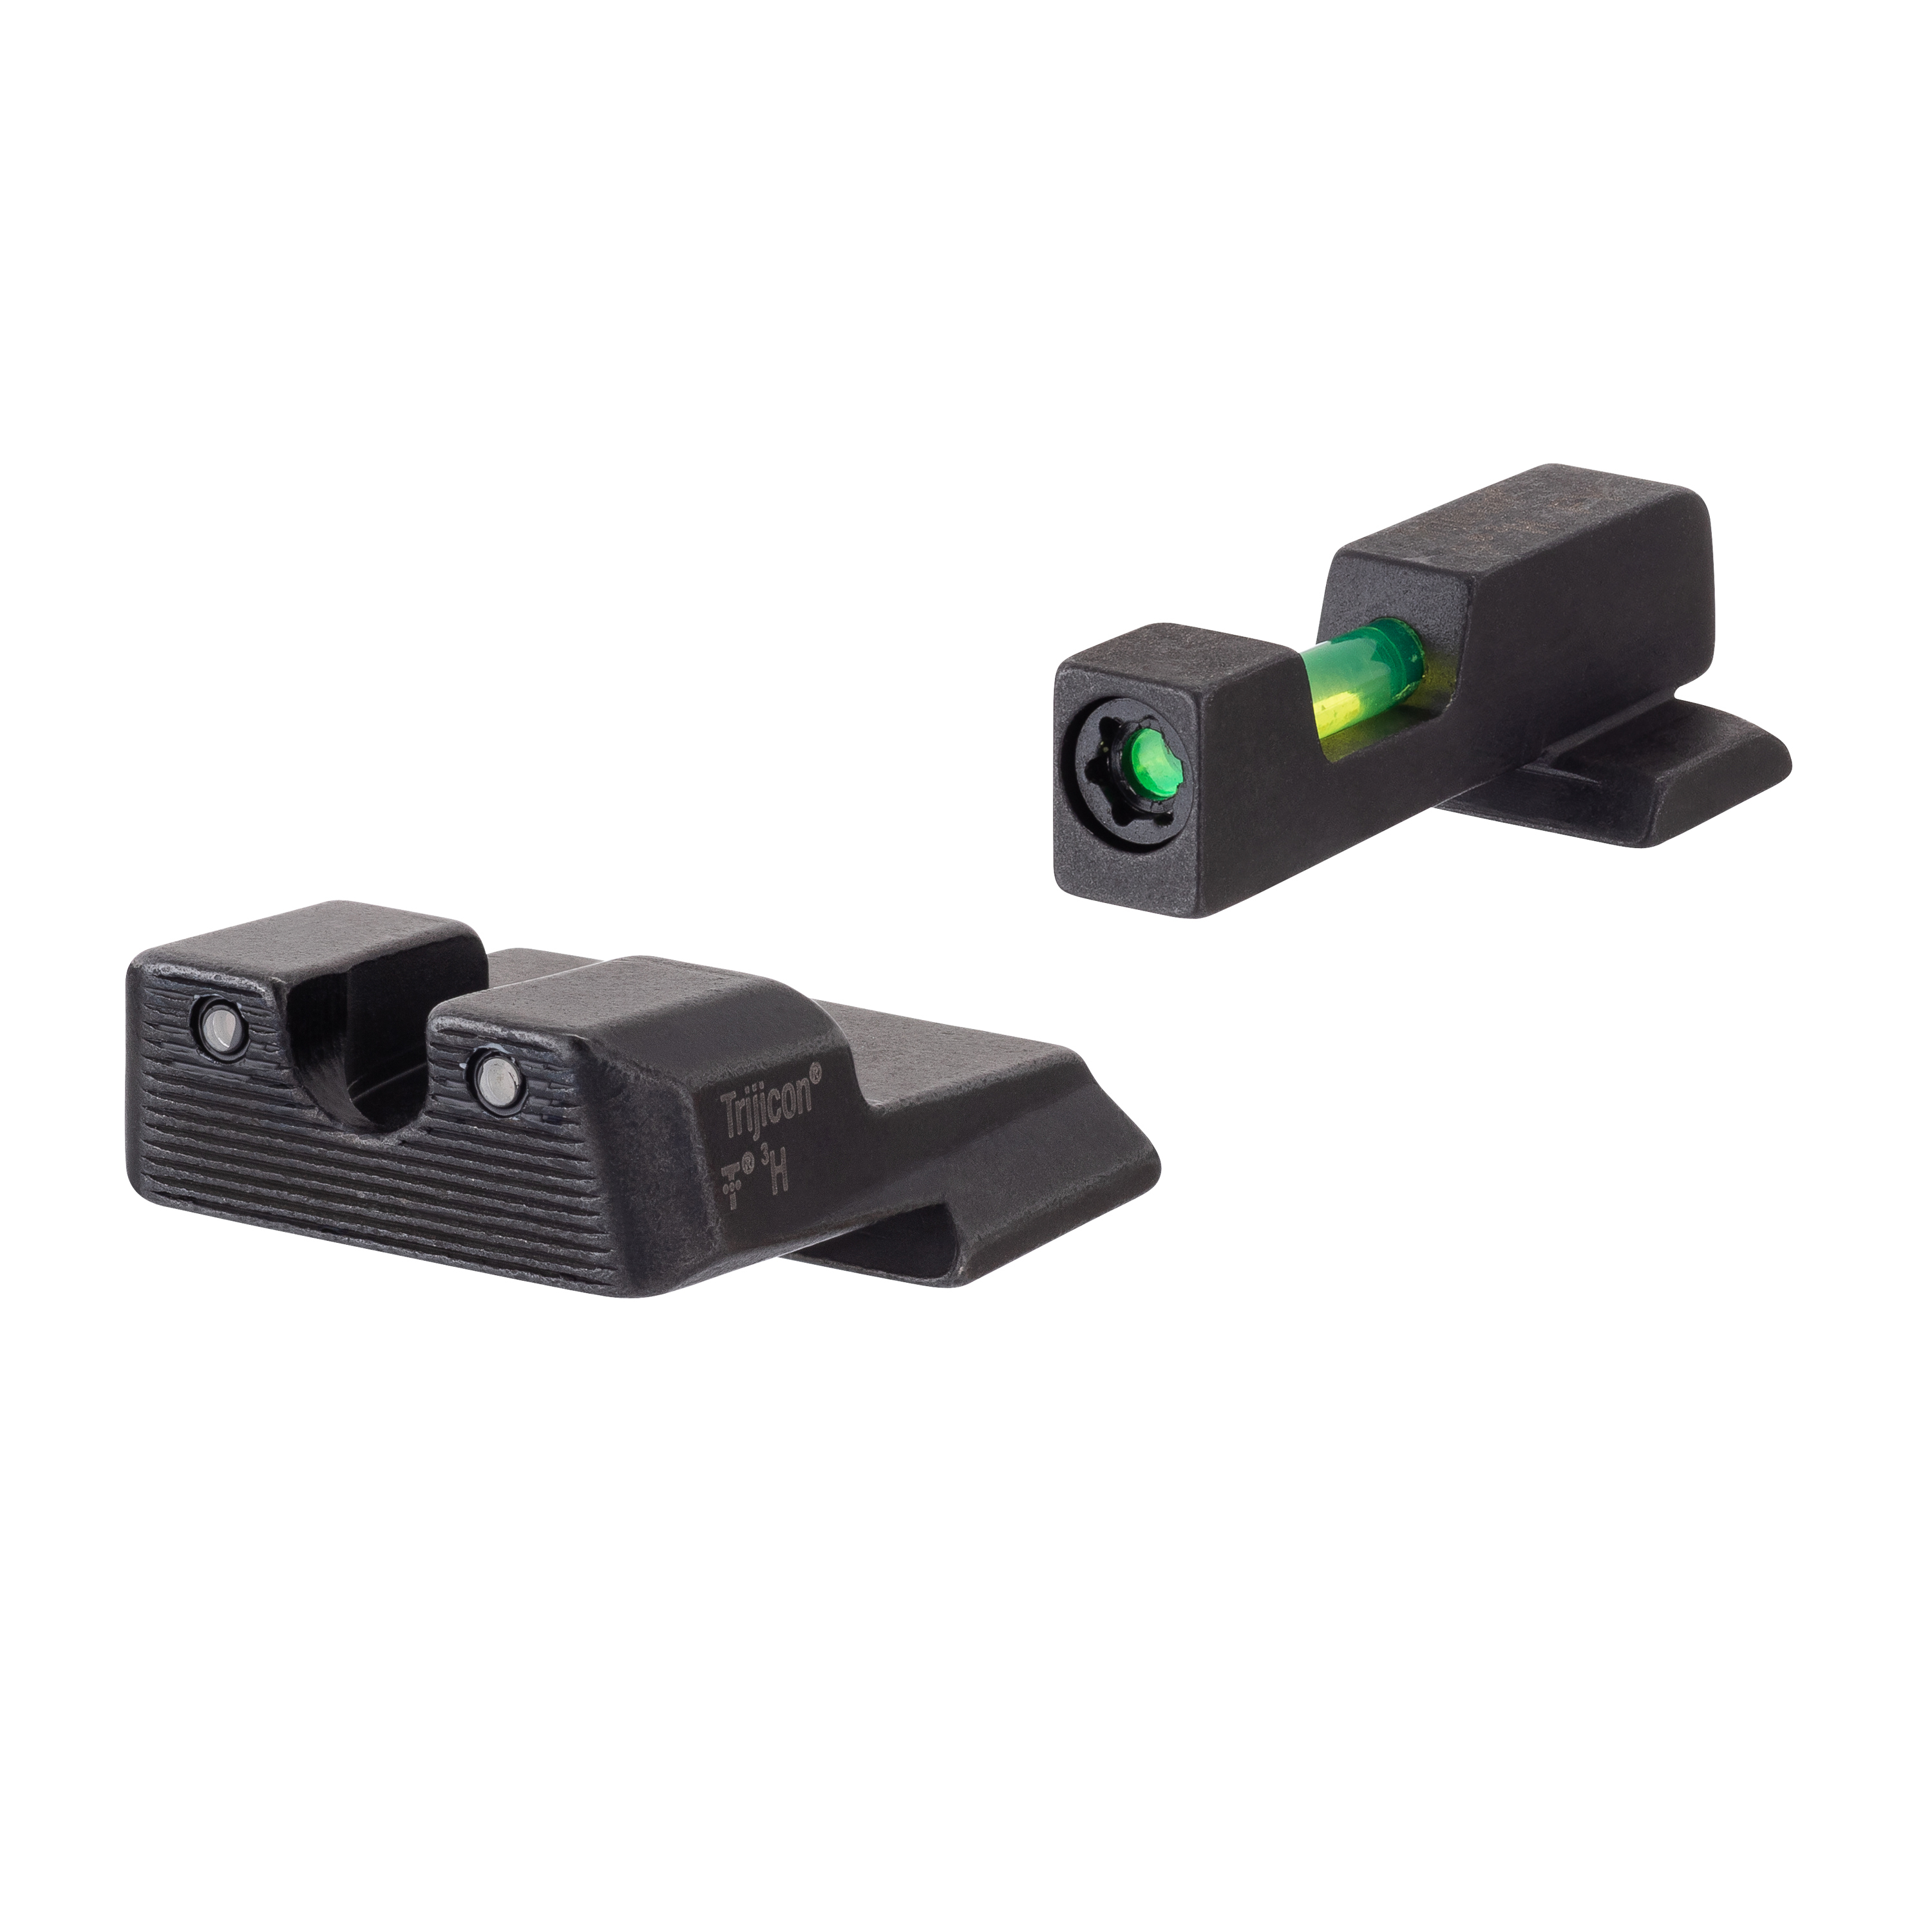 Trijicon DI™ Night Sight Set - Smith & Wesson M&P / SD